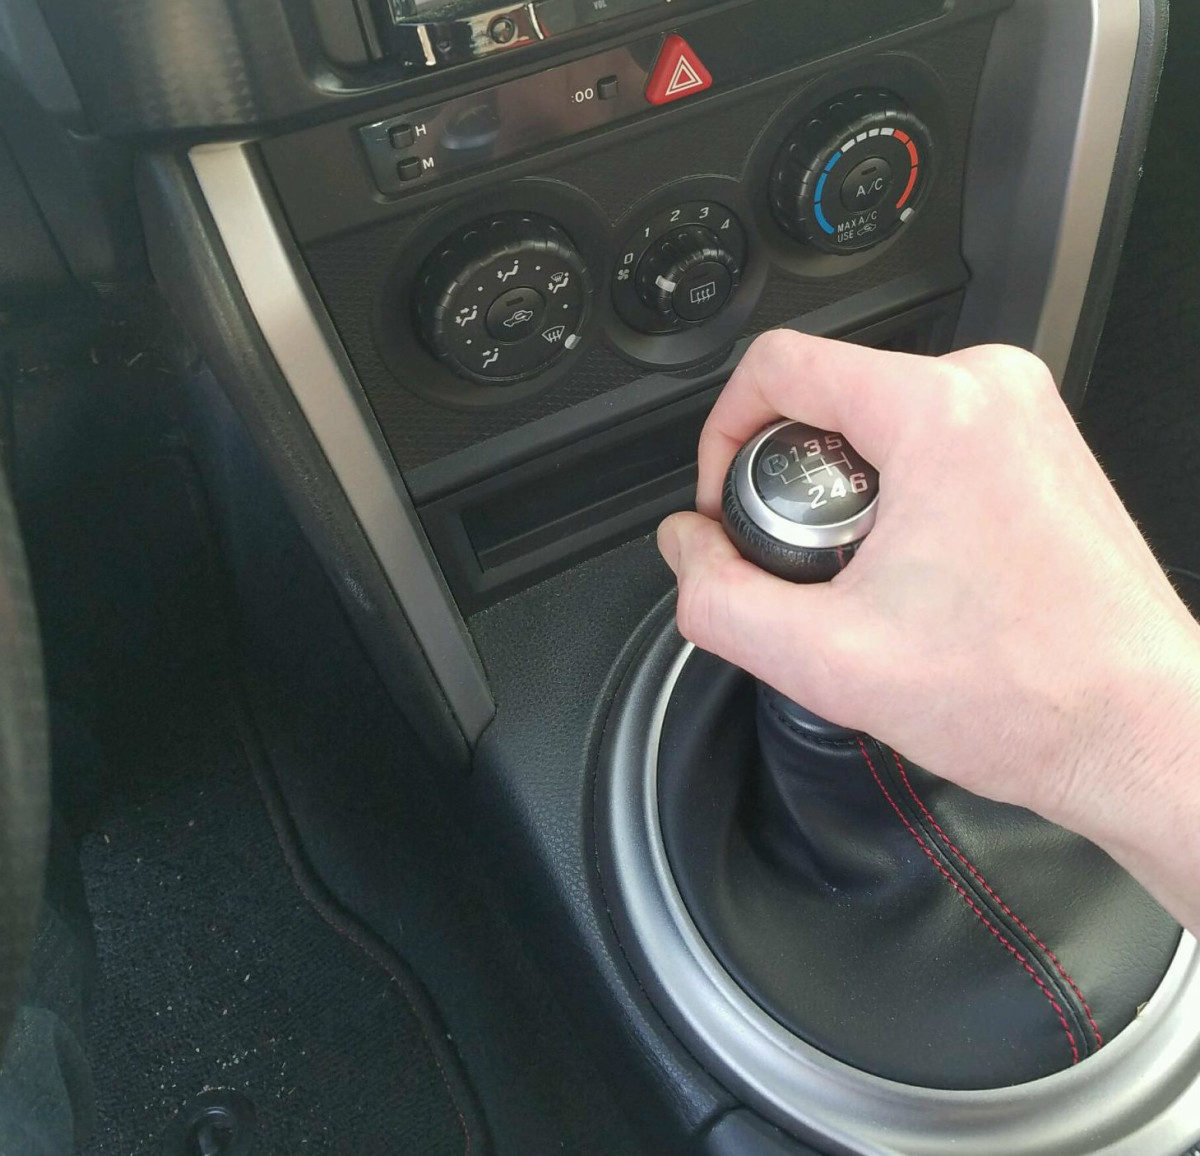 Press the clutch in all the way and move the gear shift into first gear. Usually this is to the left and up away from you.